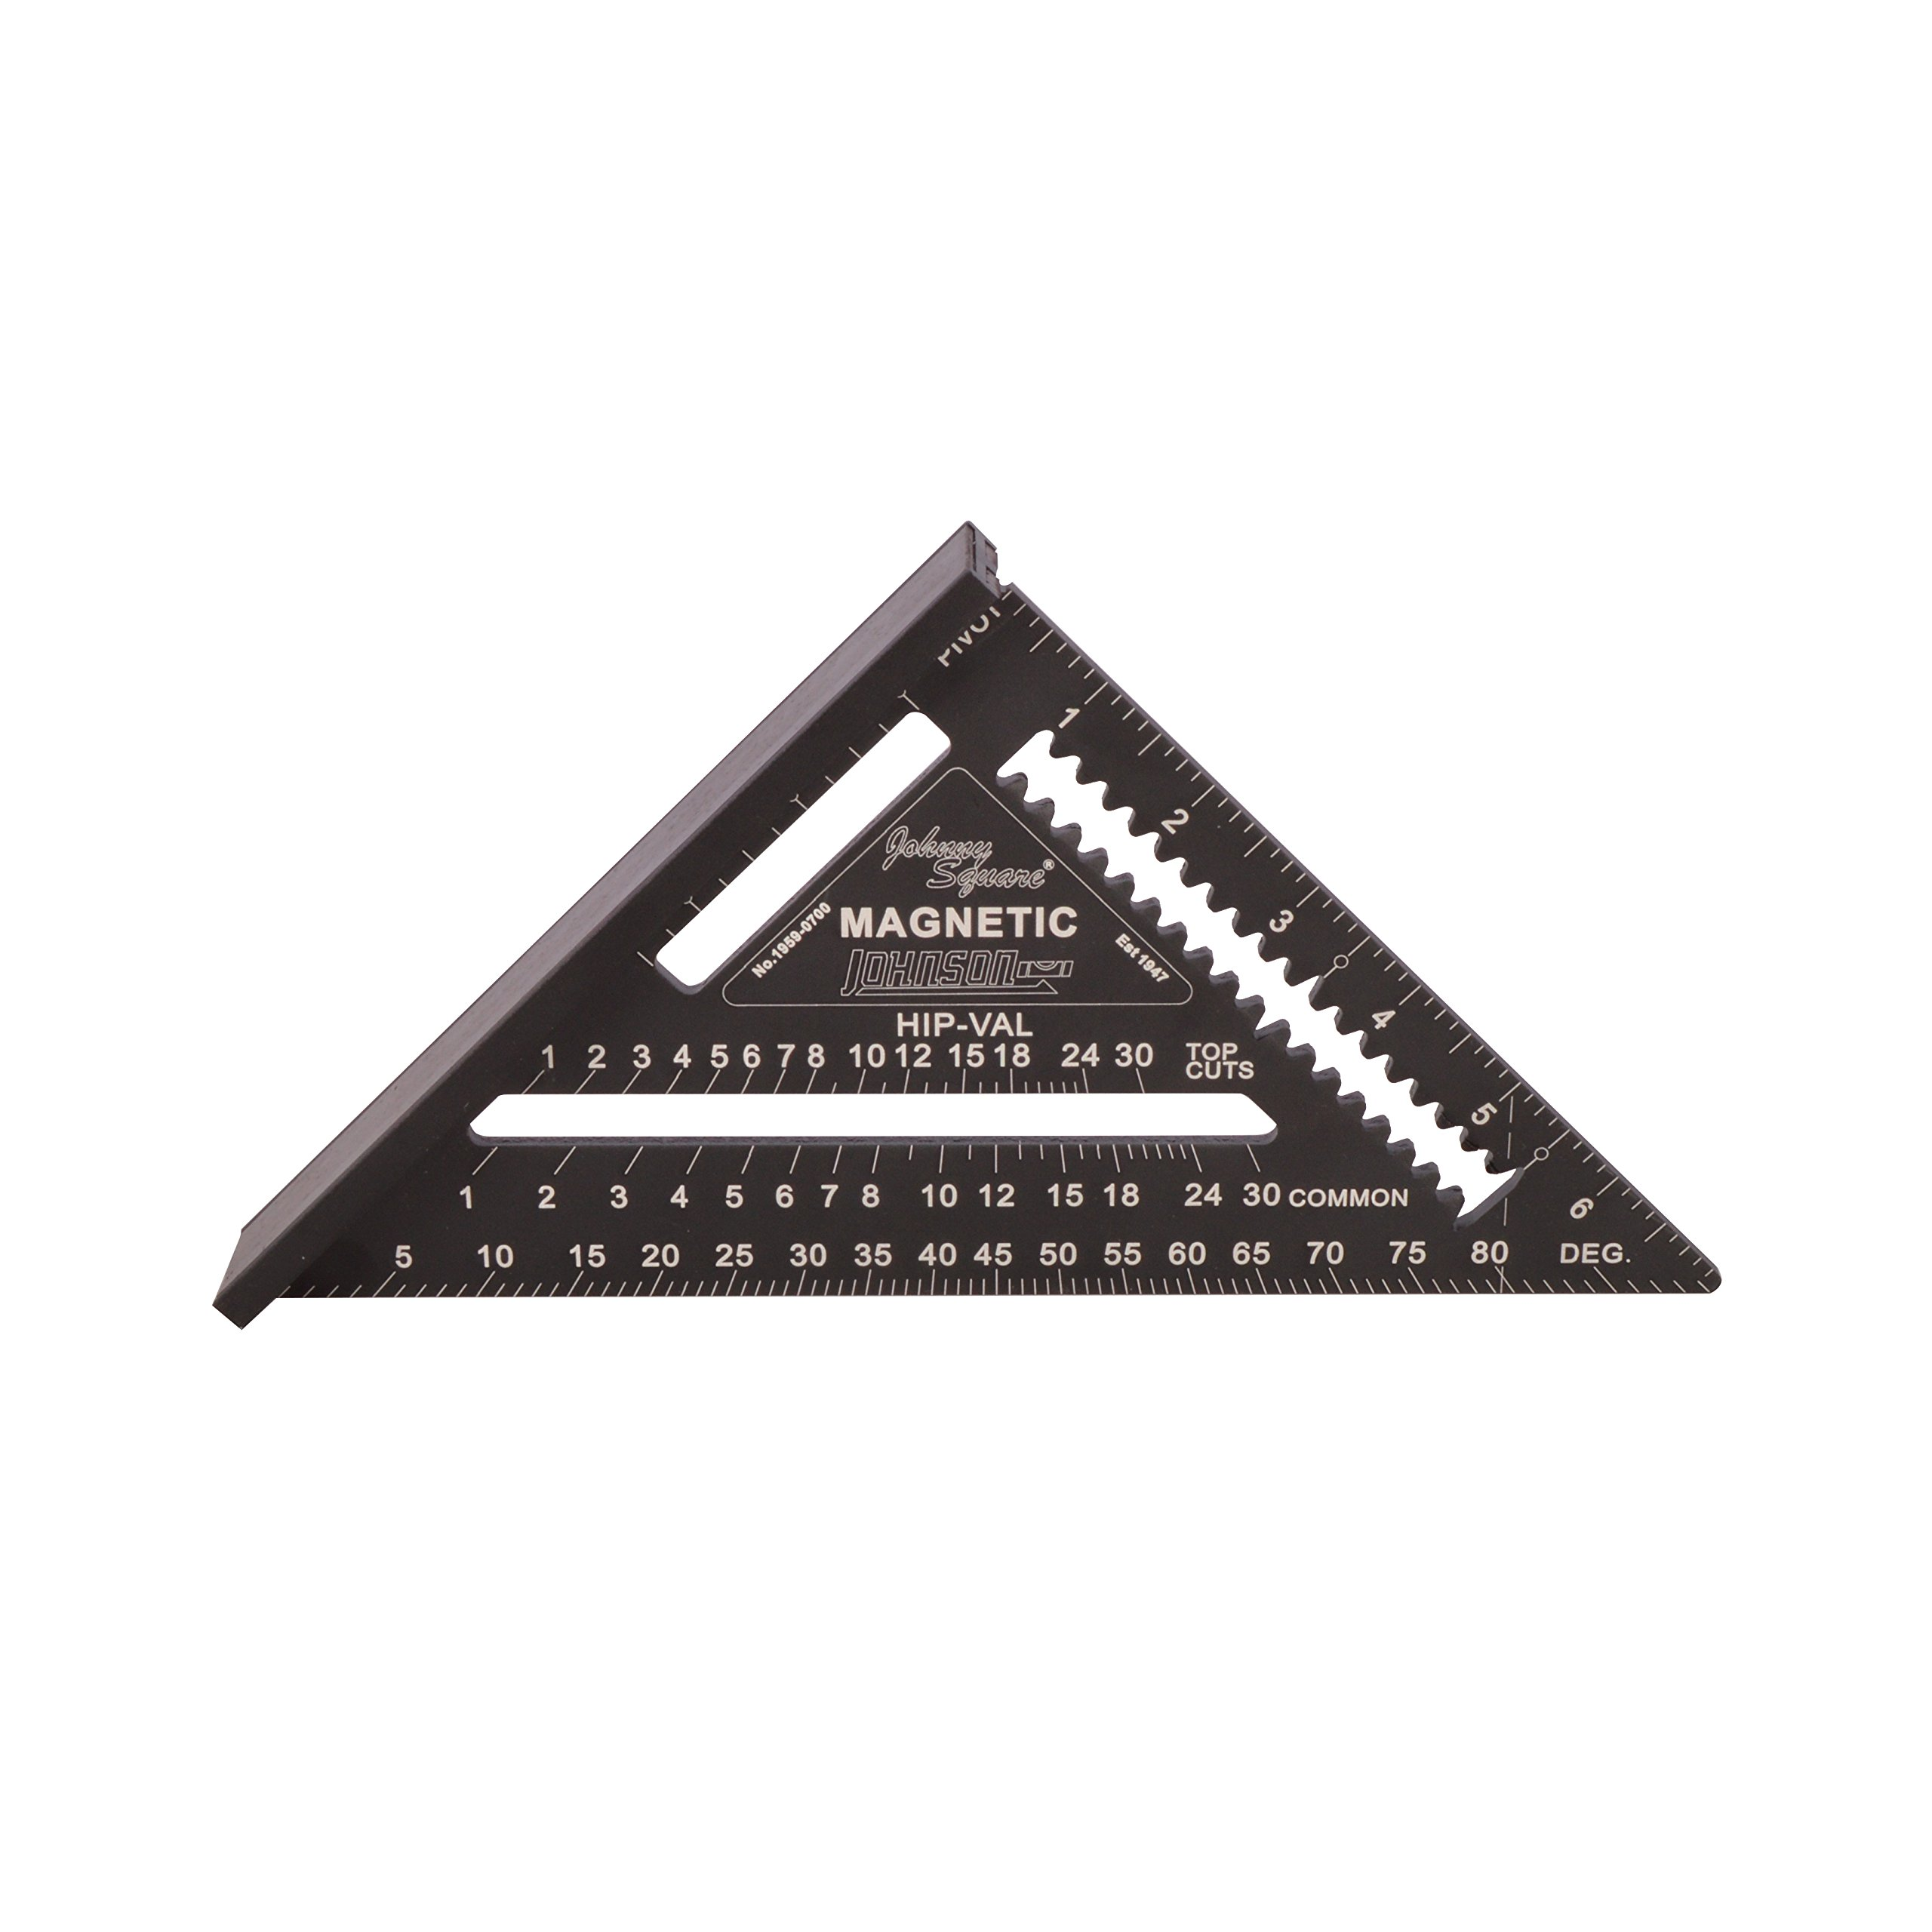 Johnson Level & Tool 1959-0700 7-Inch Magnetic Johnny Square, Professional Easy-Read Aluminum Rafter Square w/out Manual